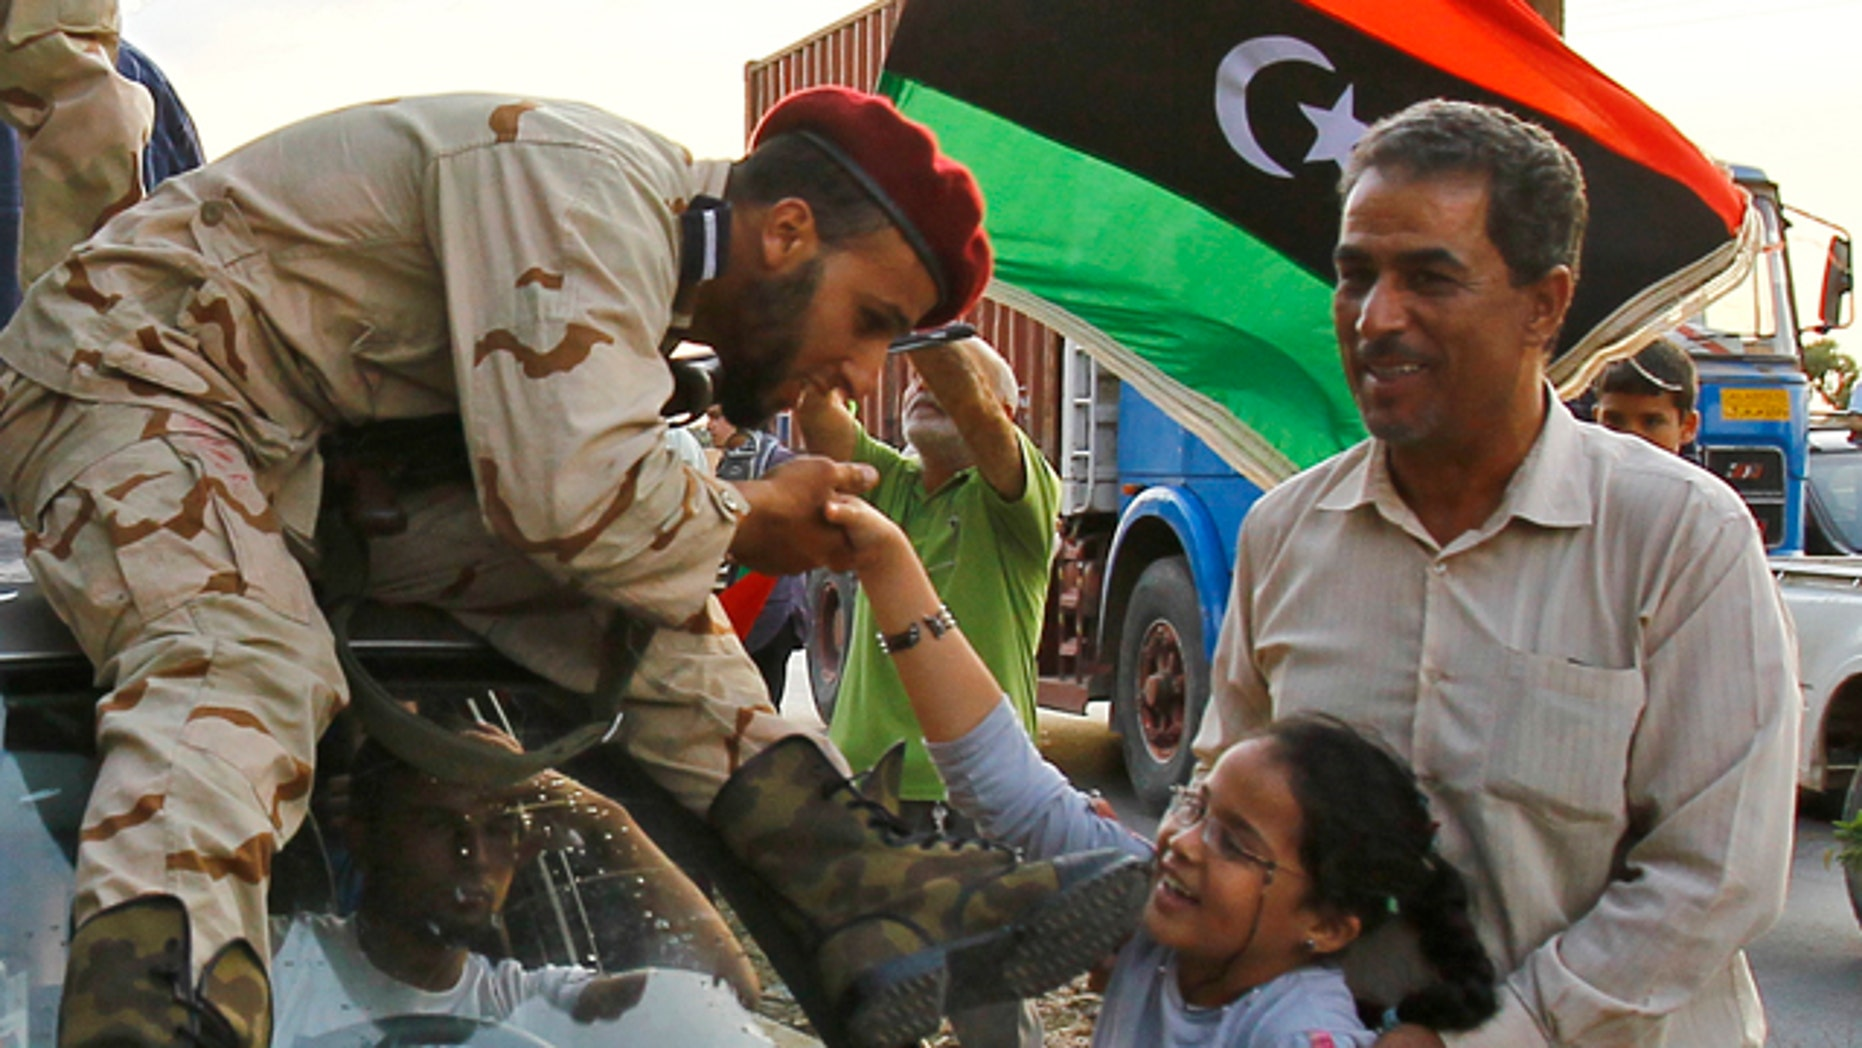 OCt. 22, 2011: A Libyan revolutionary fighter returning from Sirte is welcomed at Al Guwarsha gate in Benghazi, Libya.